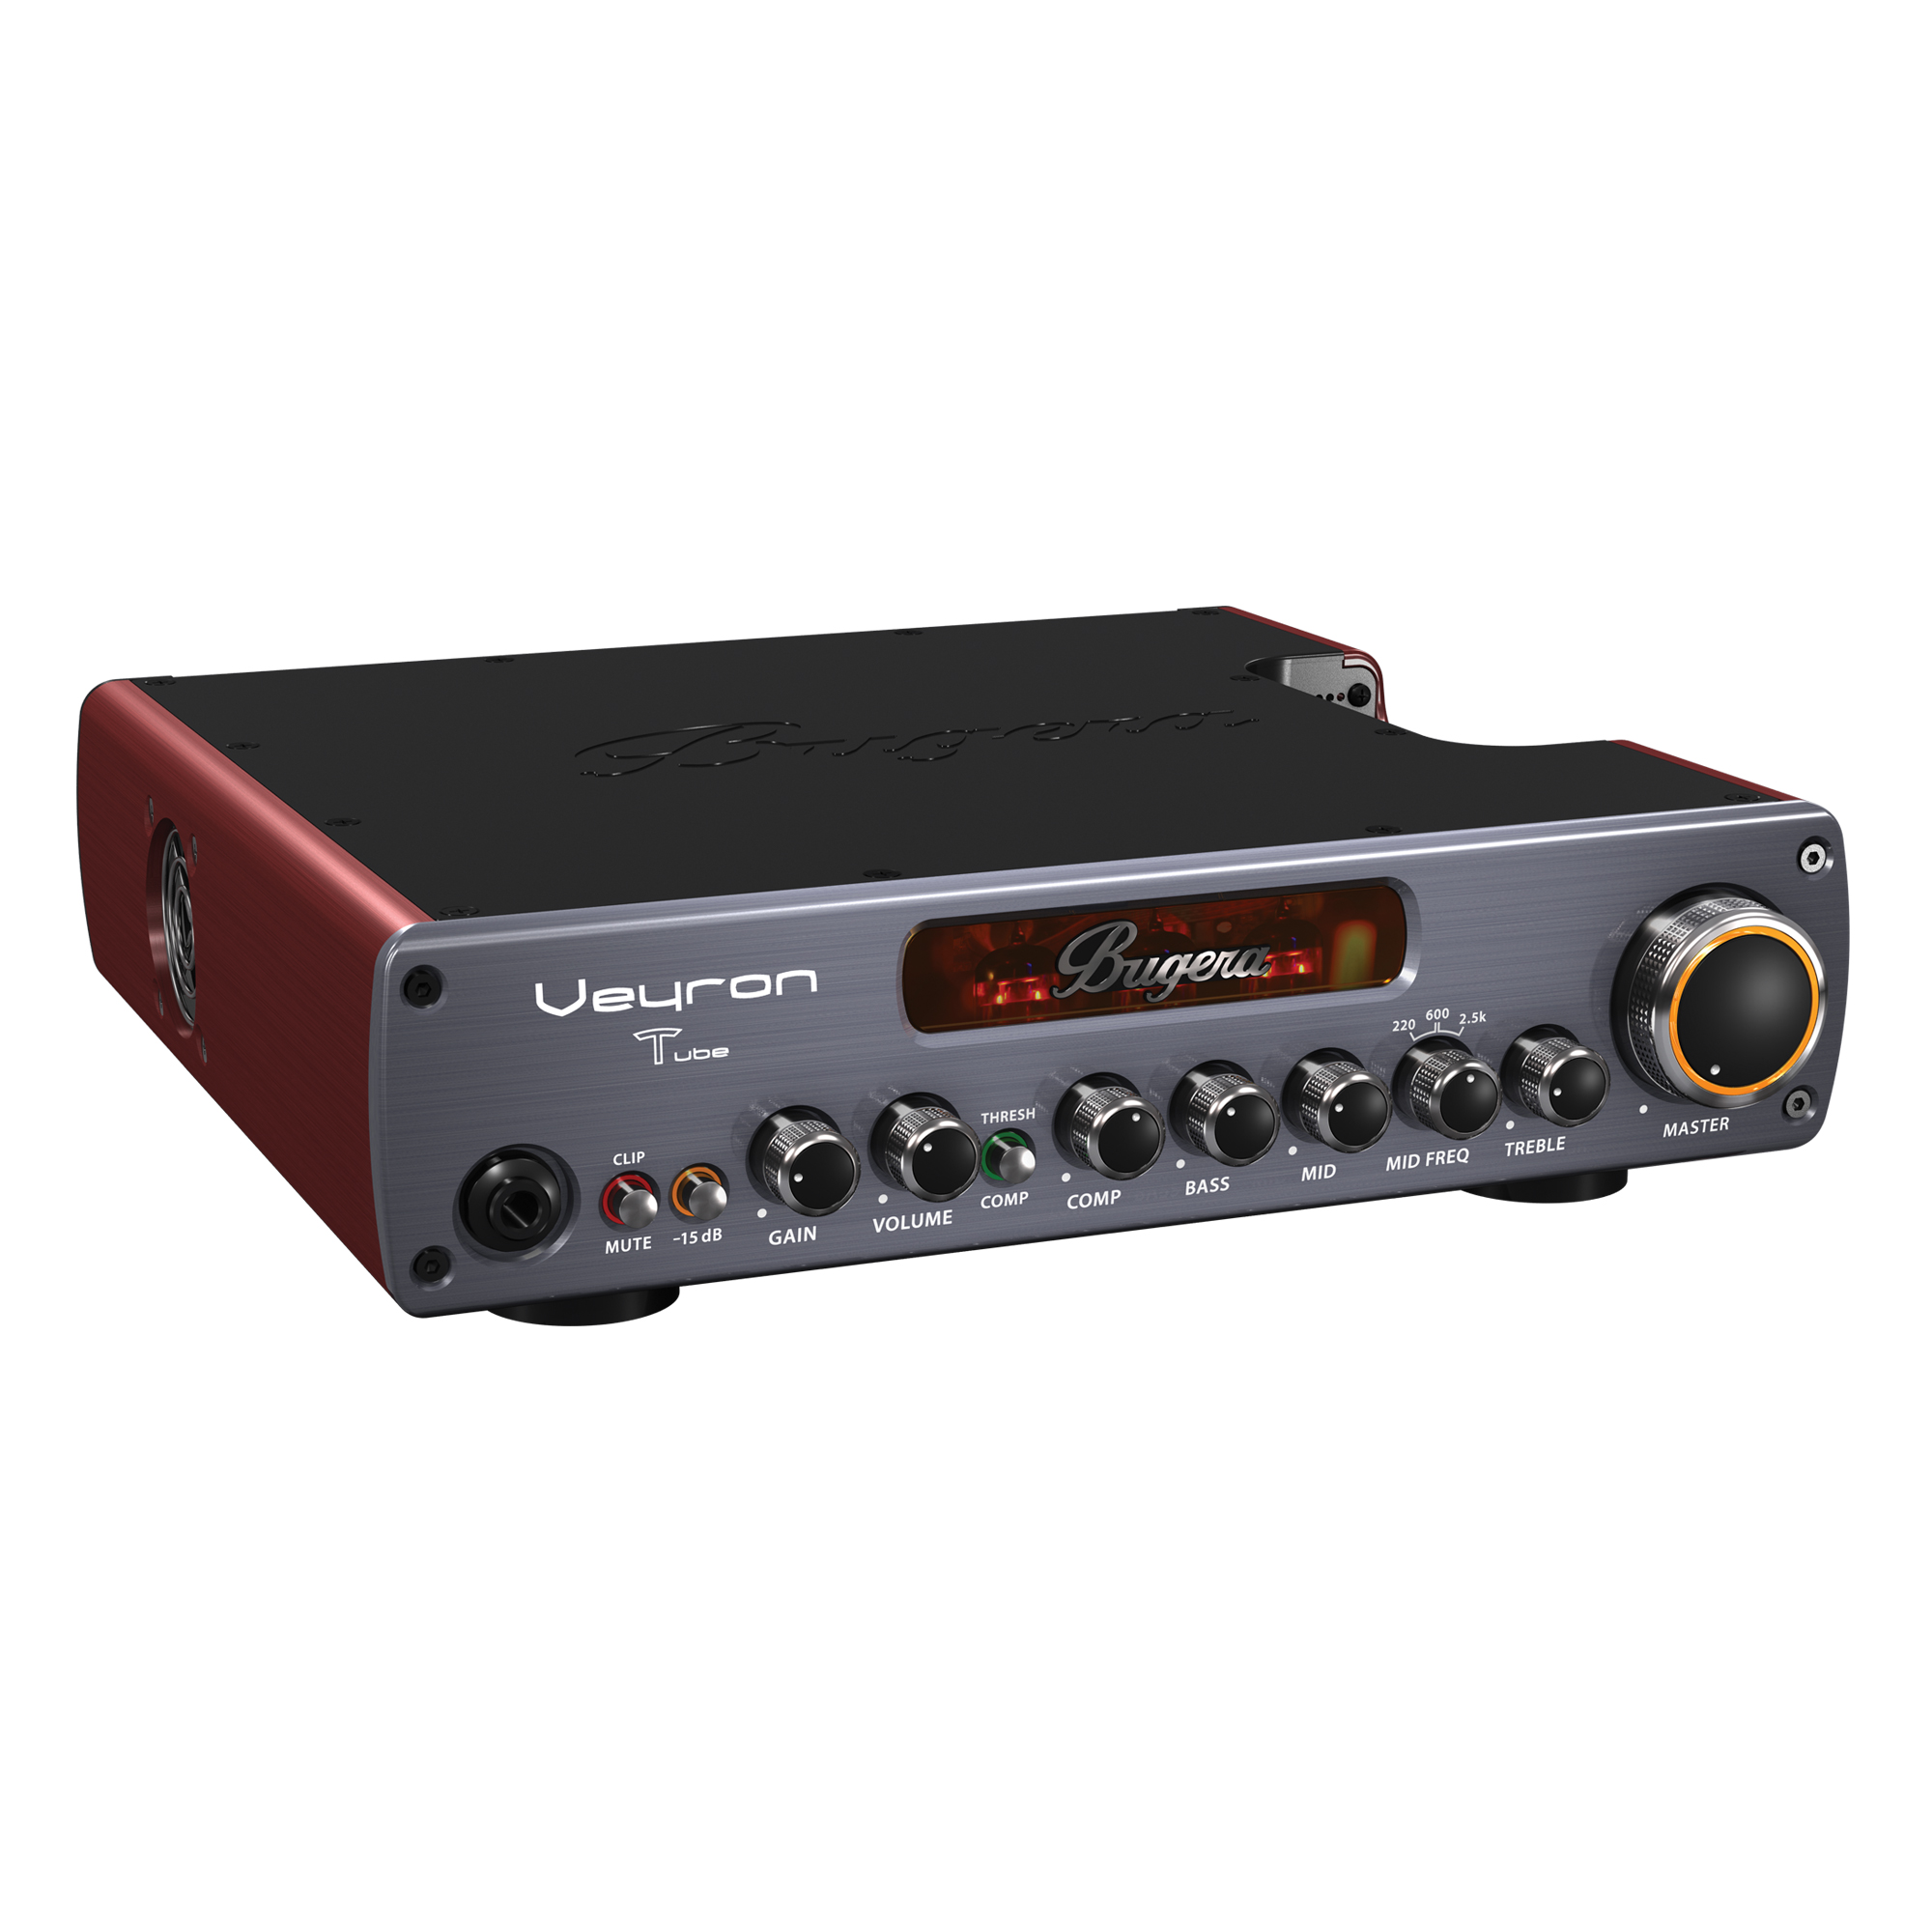 Ultra-Compact 2,000-Watt Class-D Bass Amplifier with Tube Preamp, Optical Compressor and DYNAMIZER Technology